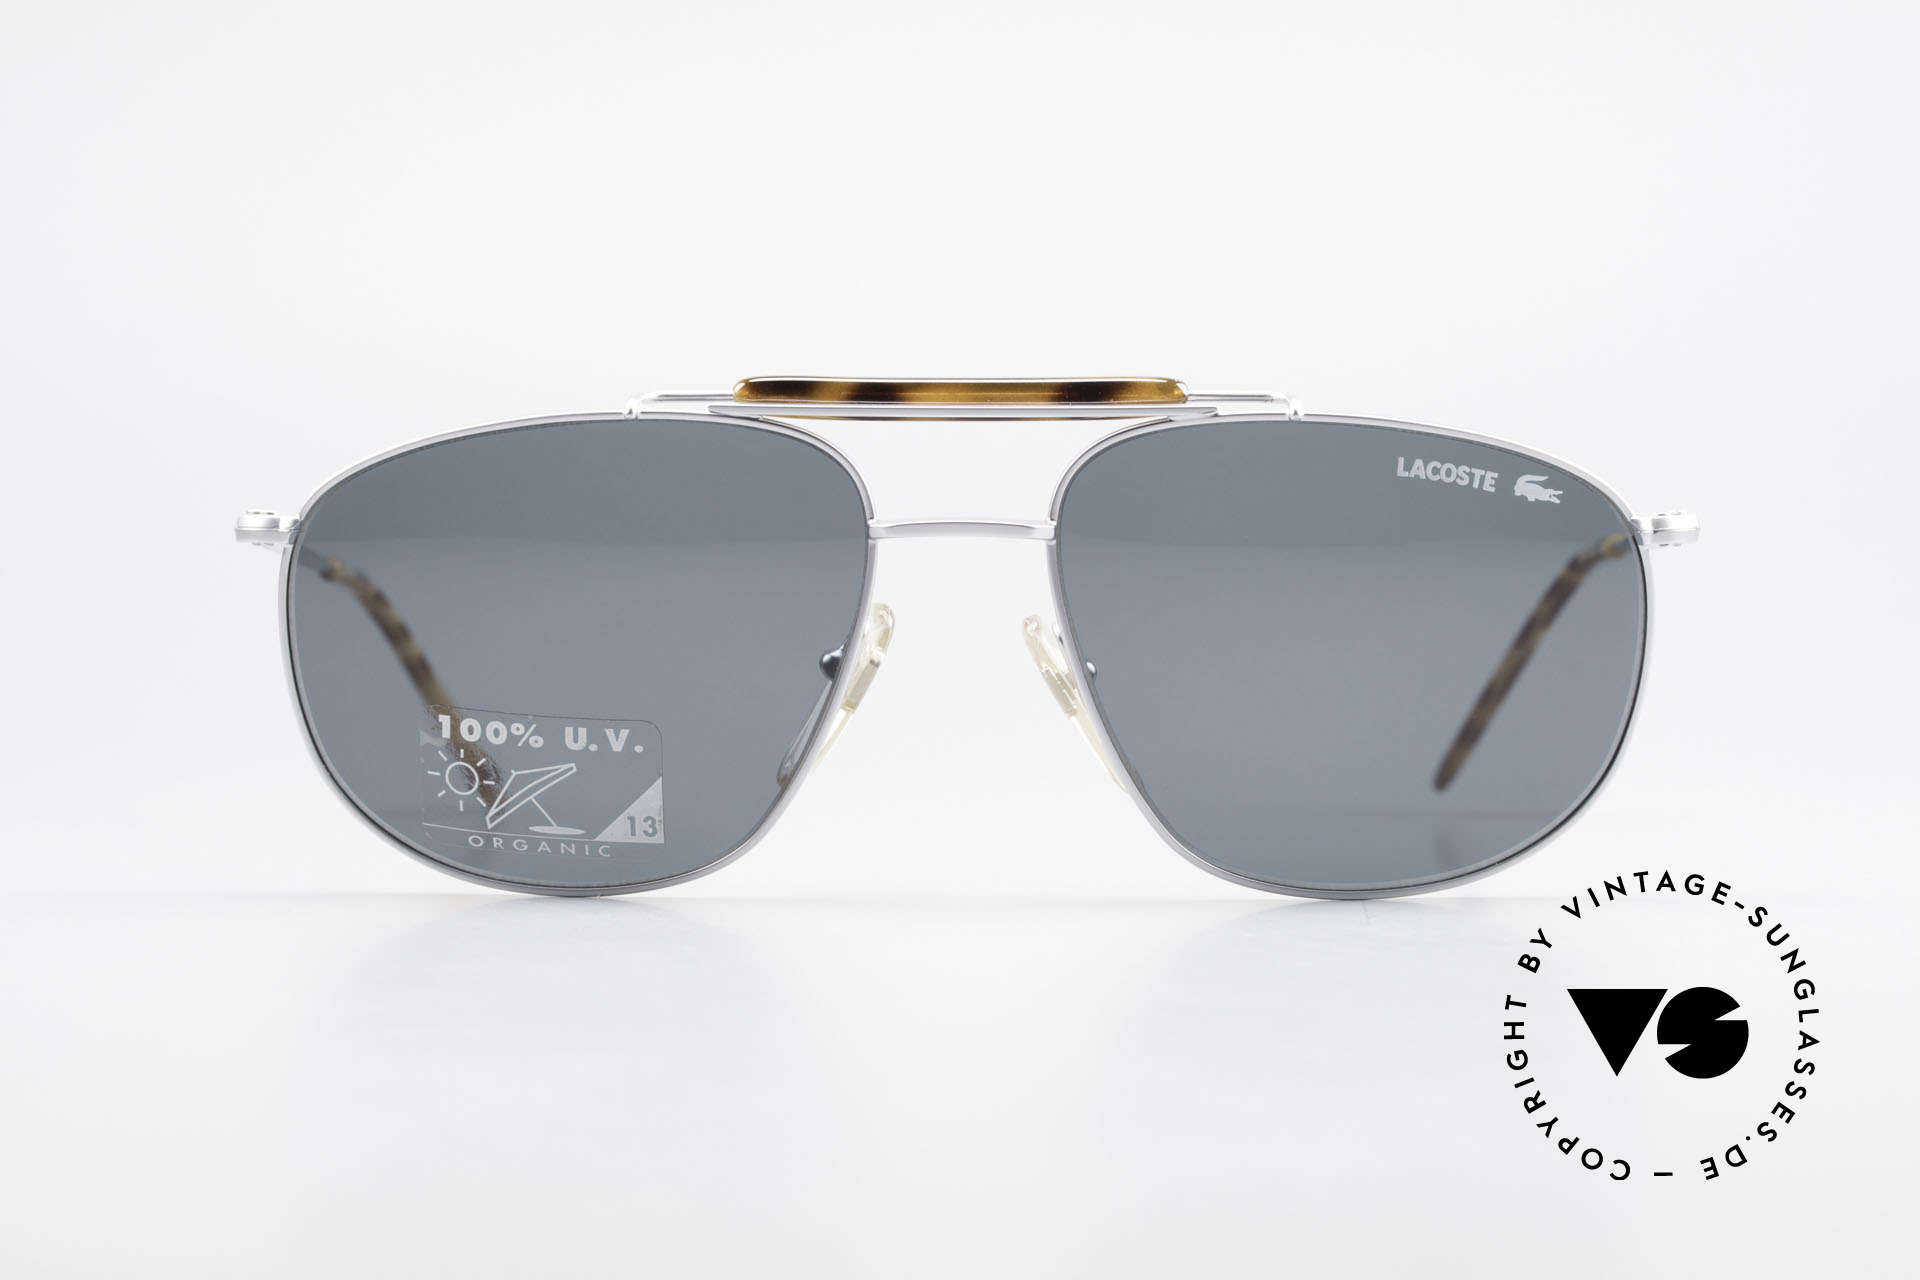 Lacoste 149 Titanium Sports Sunglasses, hybrid between sport and chic; with orig. case, Made for Men